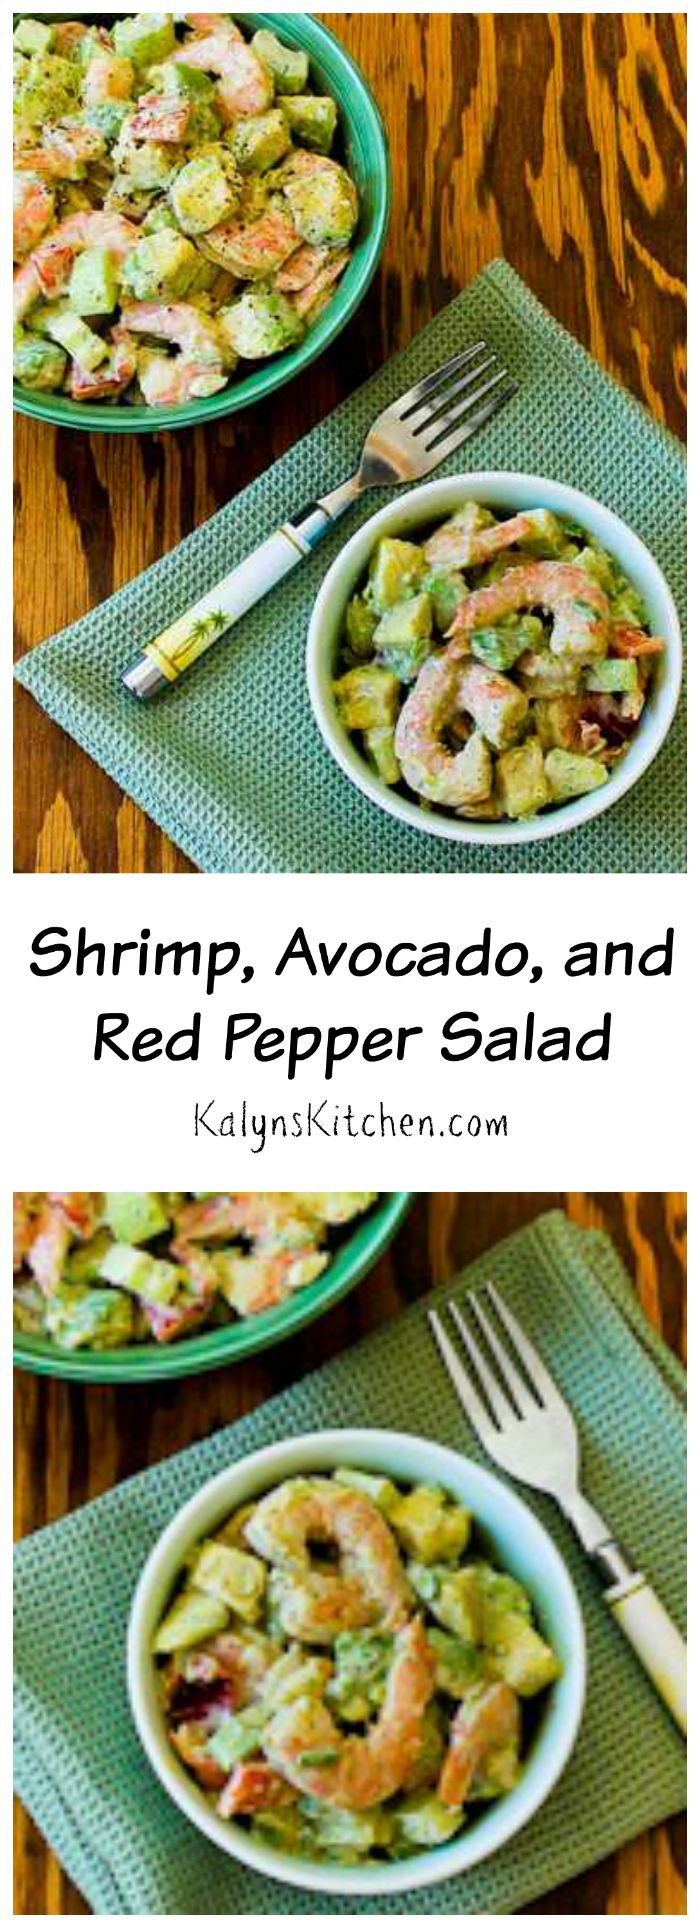 This Shrimp, Avocado, and Red Pepper Salad is delicious for an easy low-carb dinner that feels like a treat. If you use approved mayo, this can be Paleo or Whole 30 approved. [from KalynsKitchen.com]